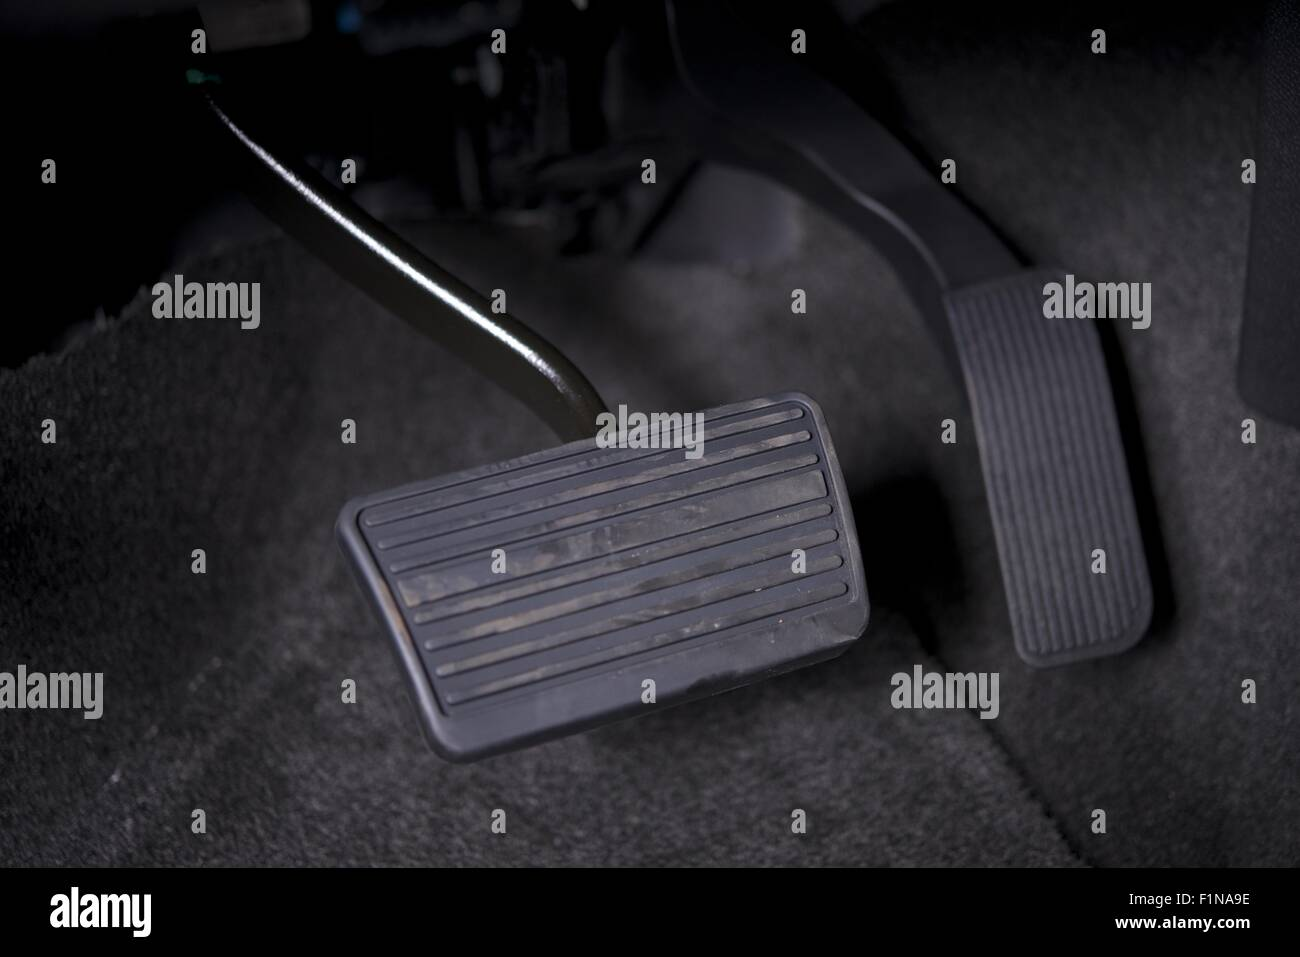 Automatic Transmission Car Pedals Closeup Gas And Break Pedals Stock Image